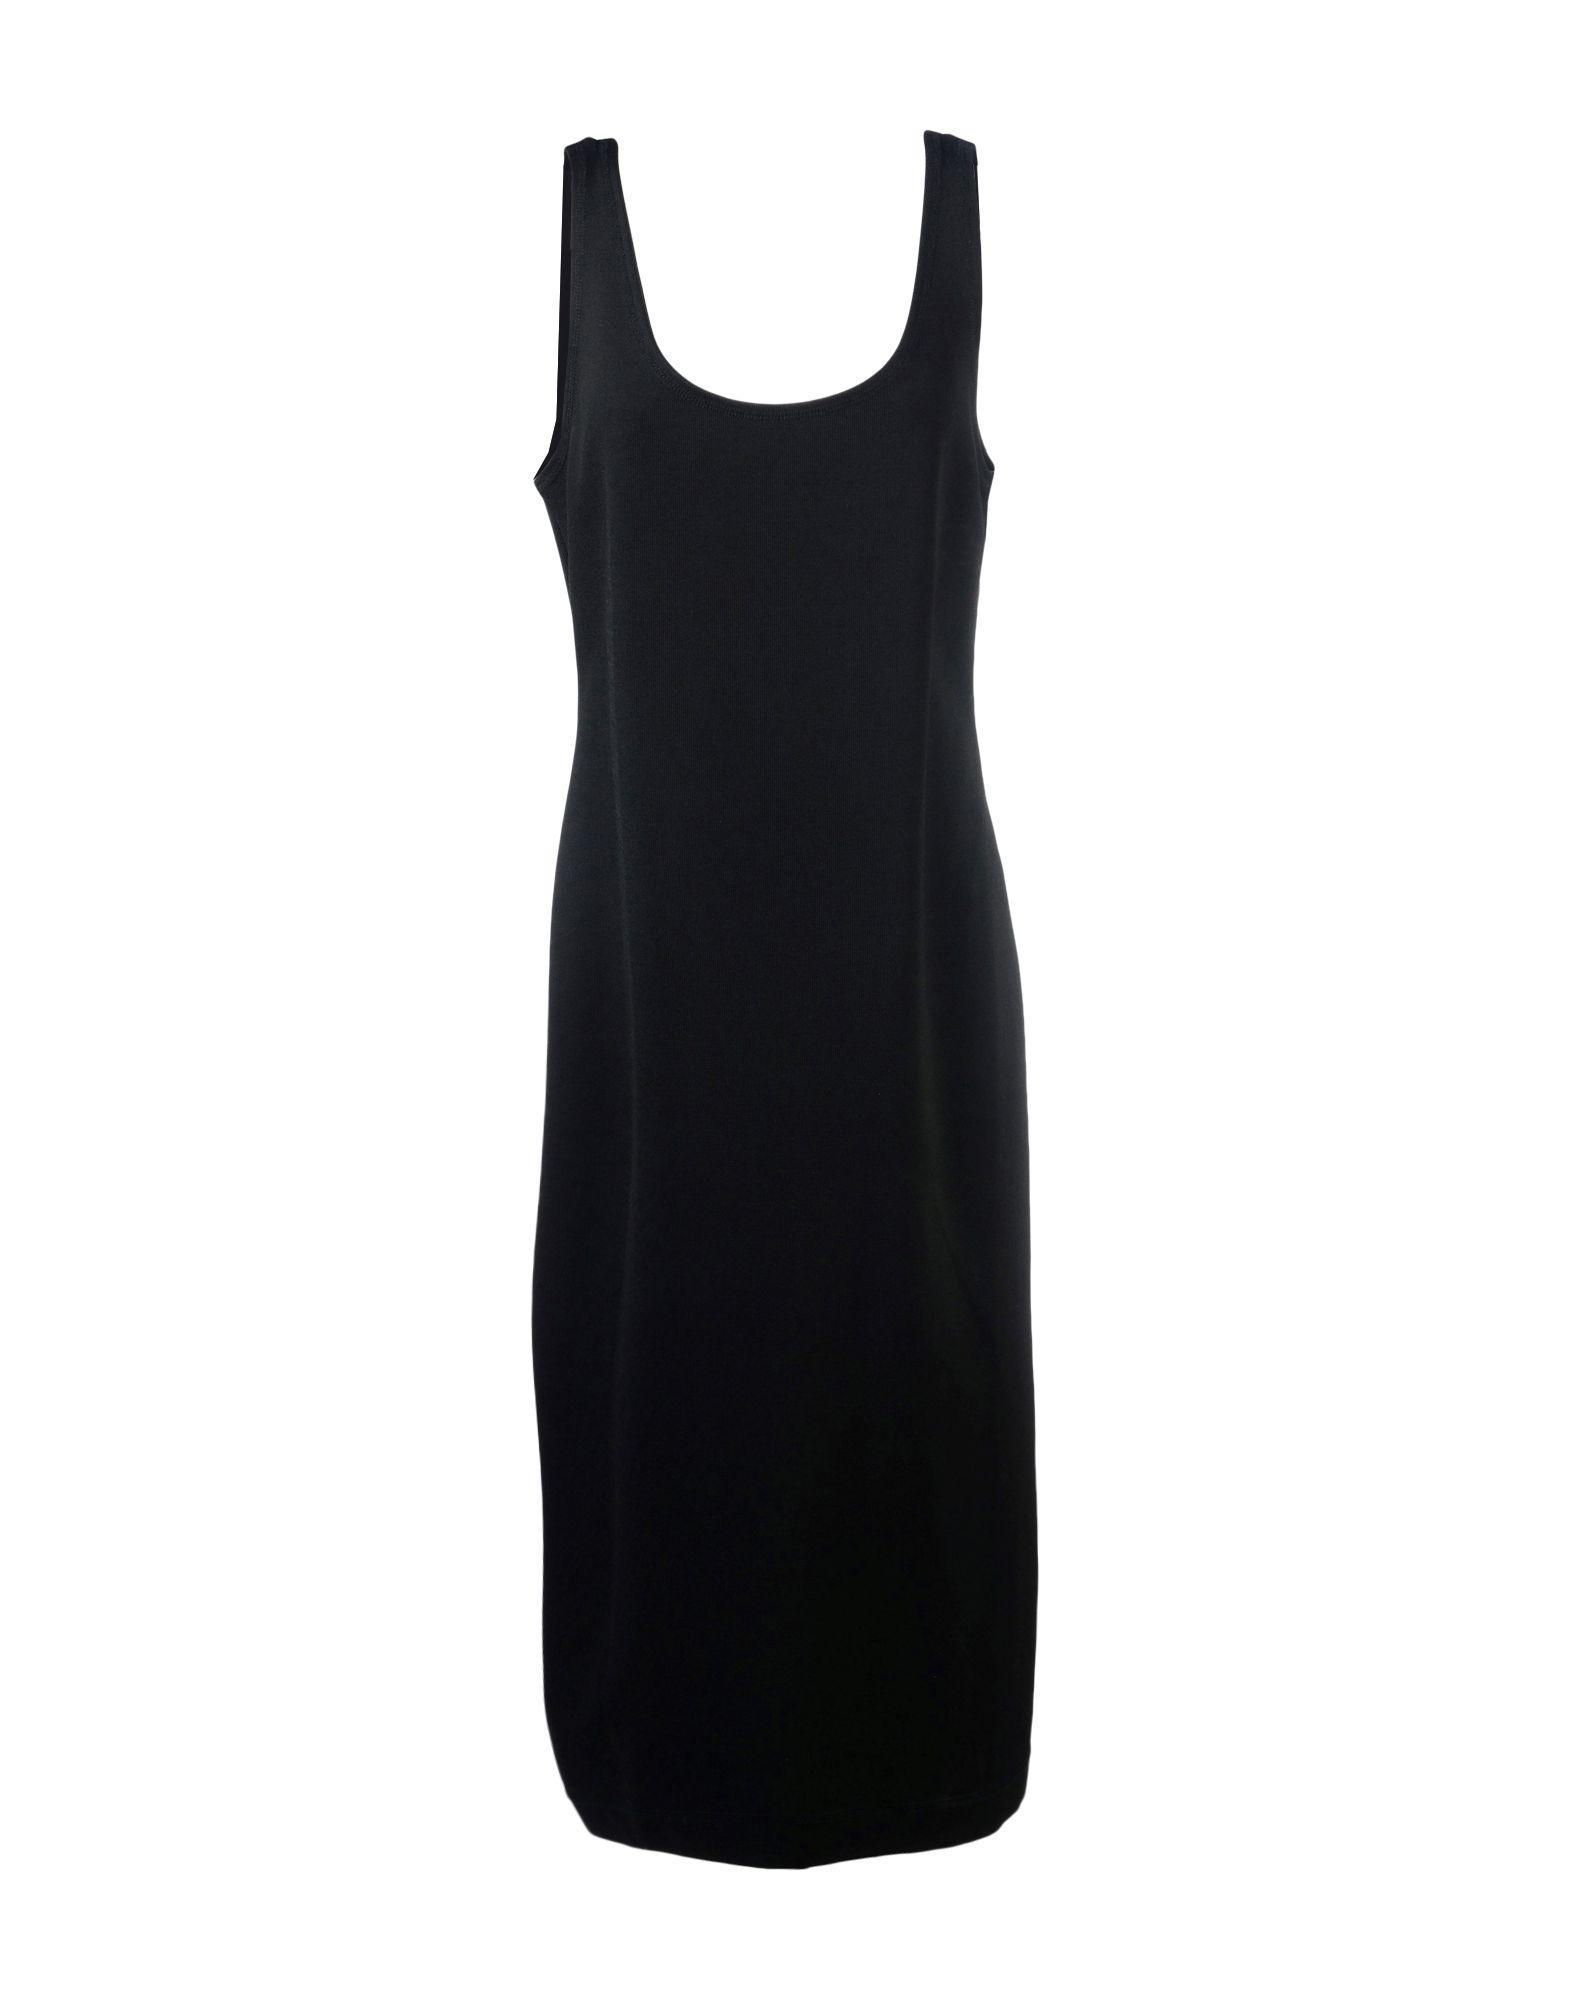 Dkny 3/4 Length Dresses In Black